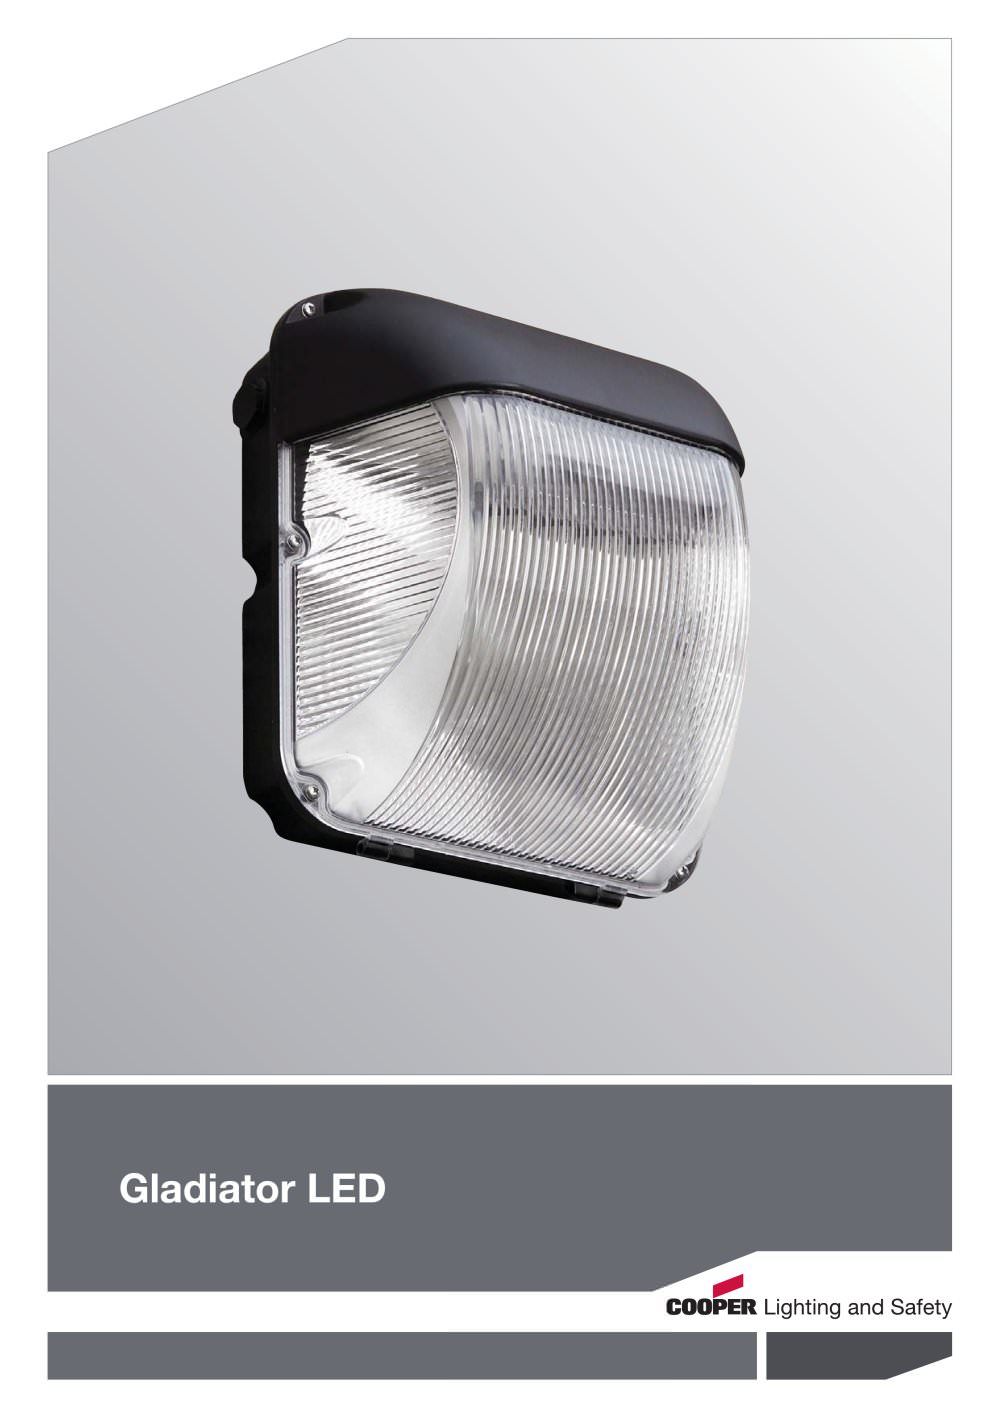 Gladiator led cooper lighting and safety pdf catalogue gladiator led 1 4 pages aloadofball Image collections